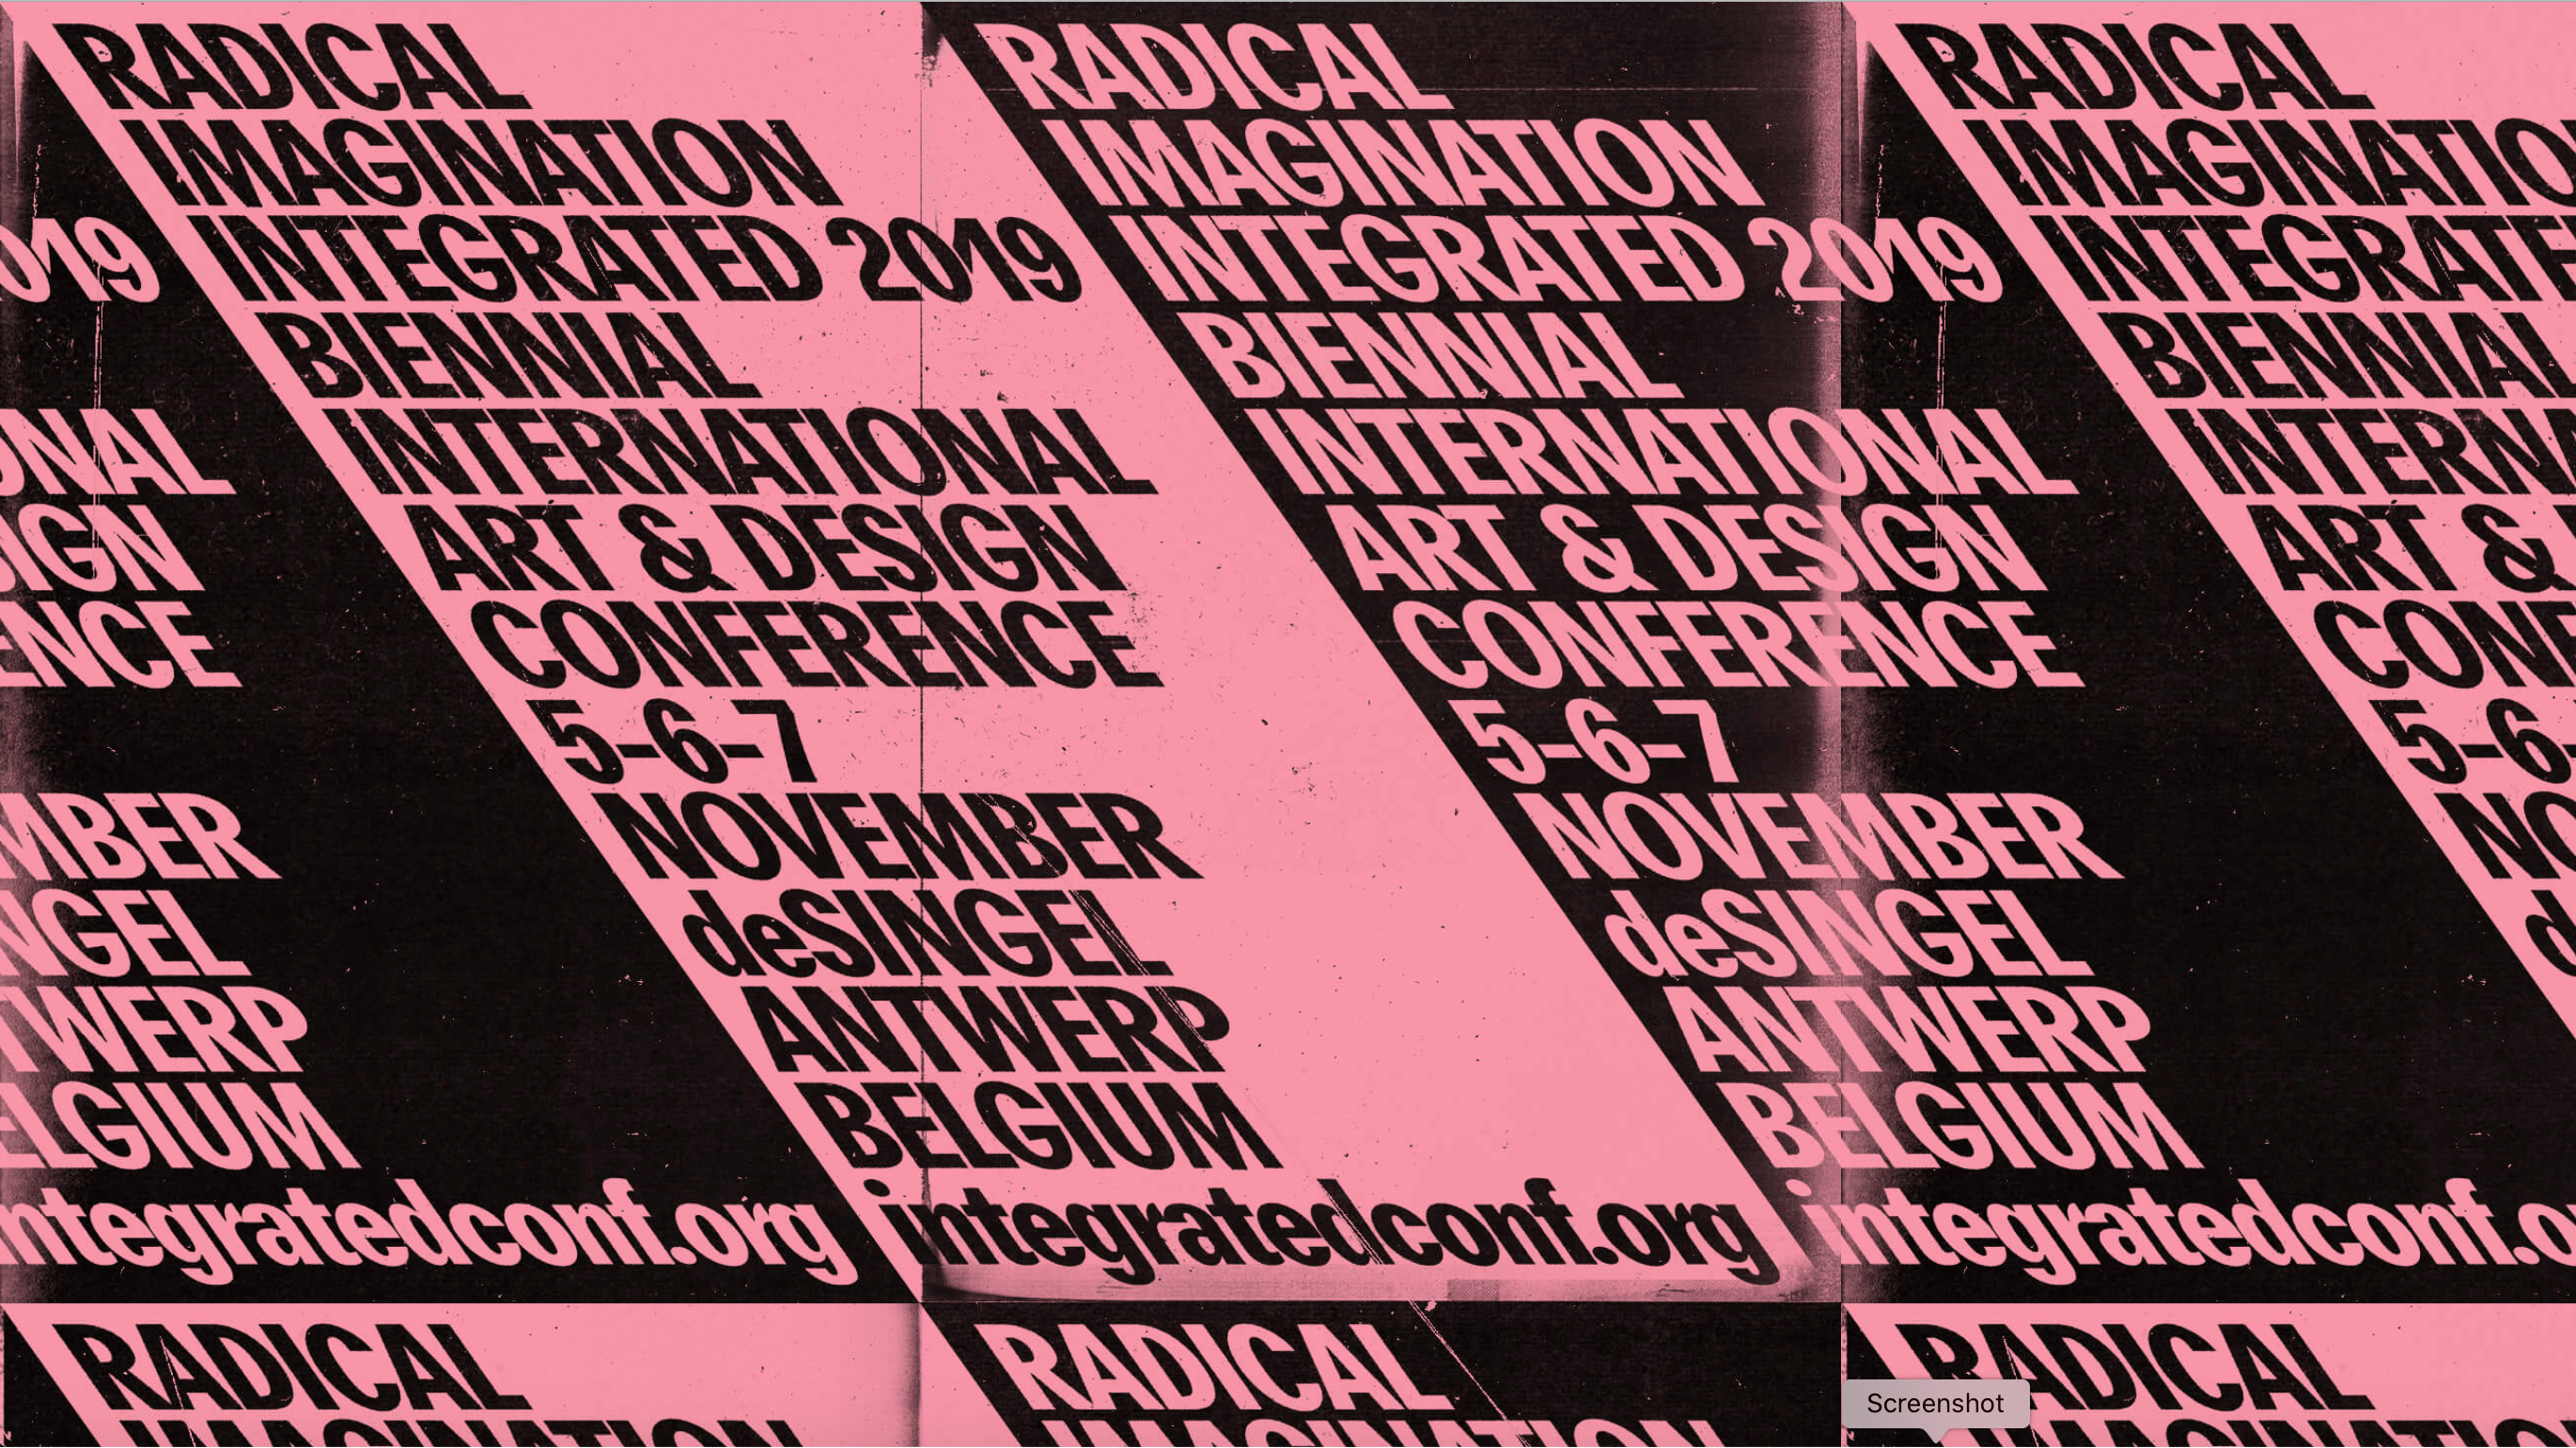 THE END OF HISTORY COMES AT THE END OF RADICAL IMAGINATION | IRI at Integrated 2019